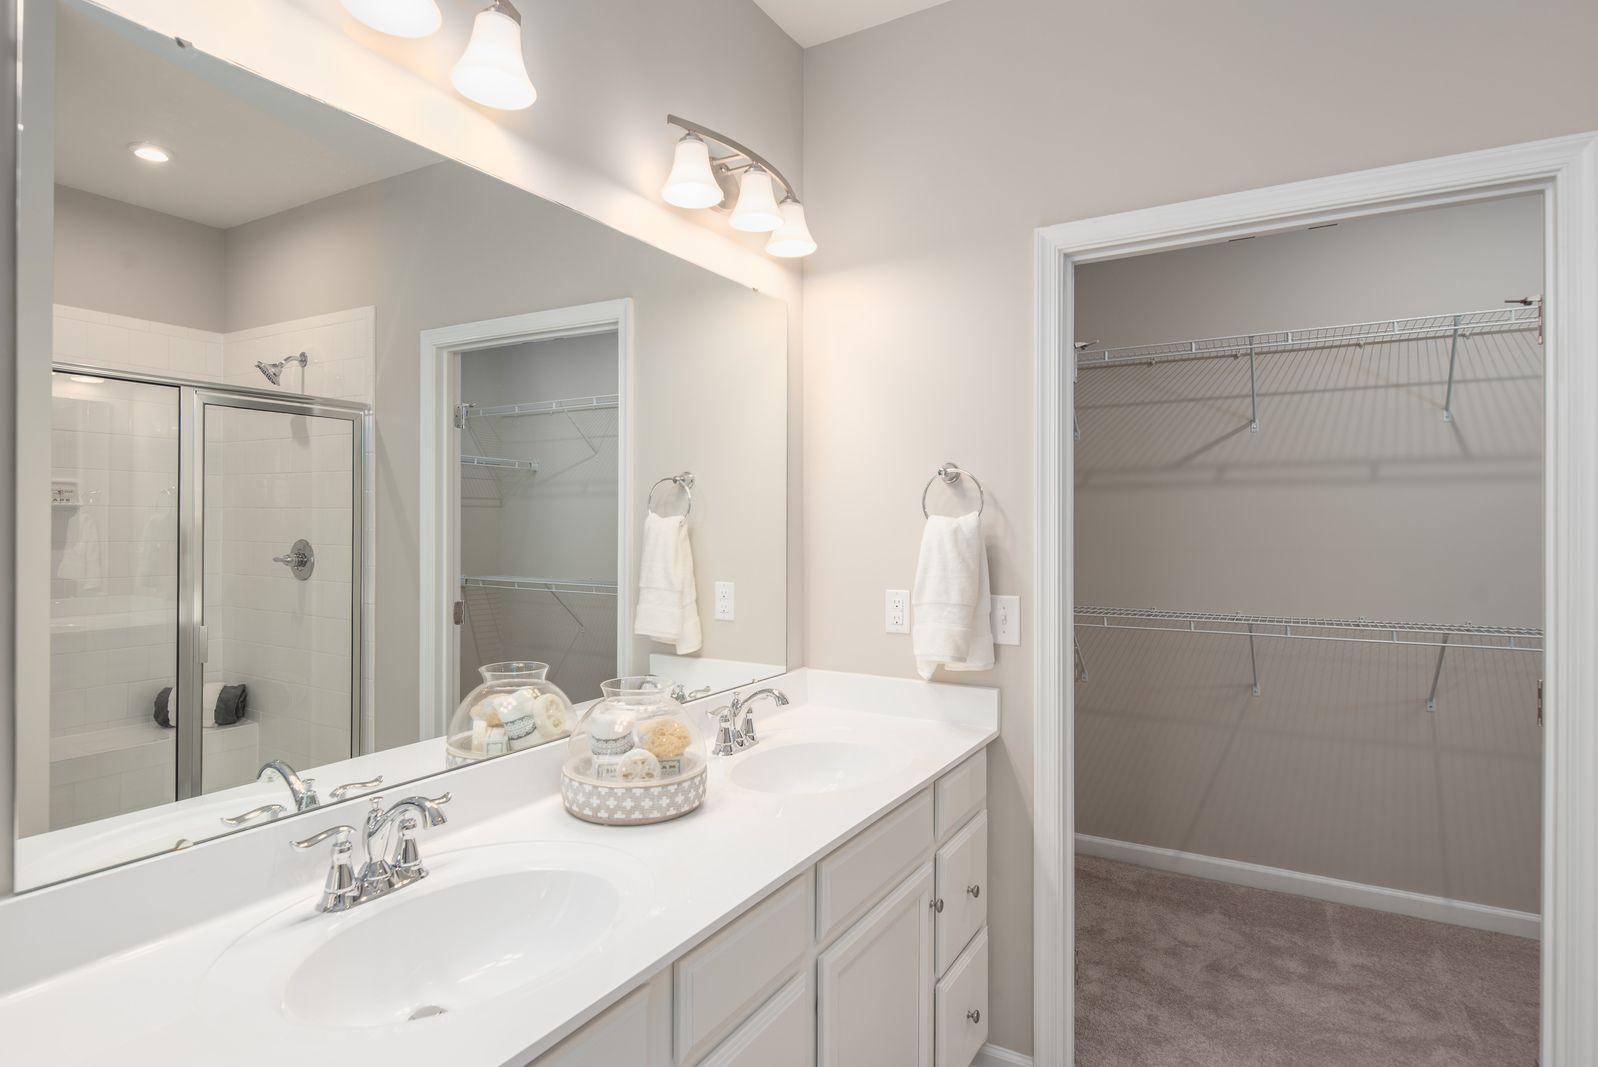 Bathroom featured in the Genoa By Ryan Homes in Cleveland, OH